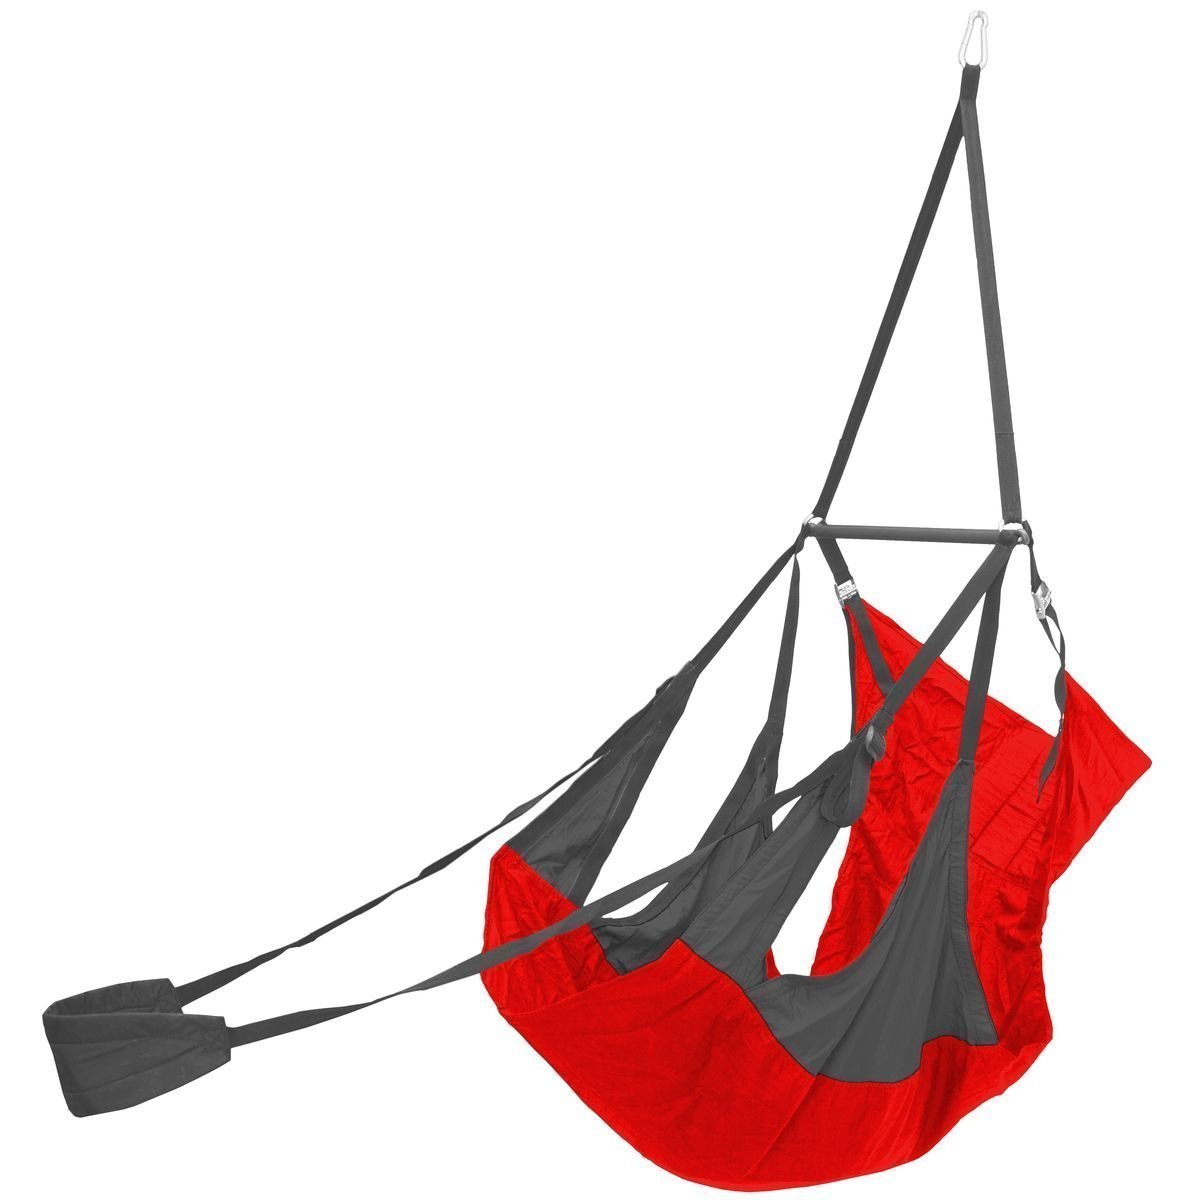 Eagles Nest Outfitters - AIRPOD Hanging Chair Red/Charcoal [並行輸入品] B077QH21F8